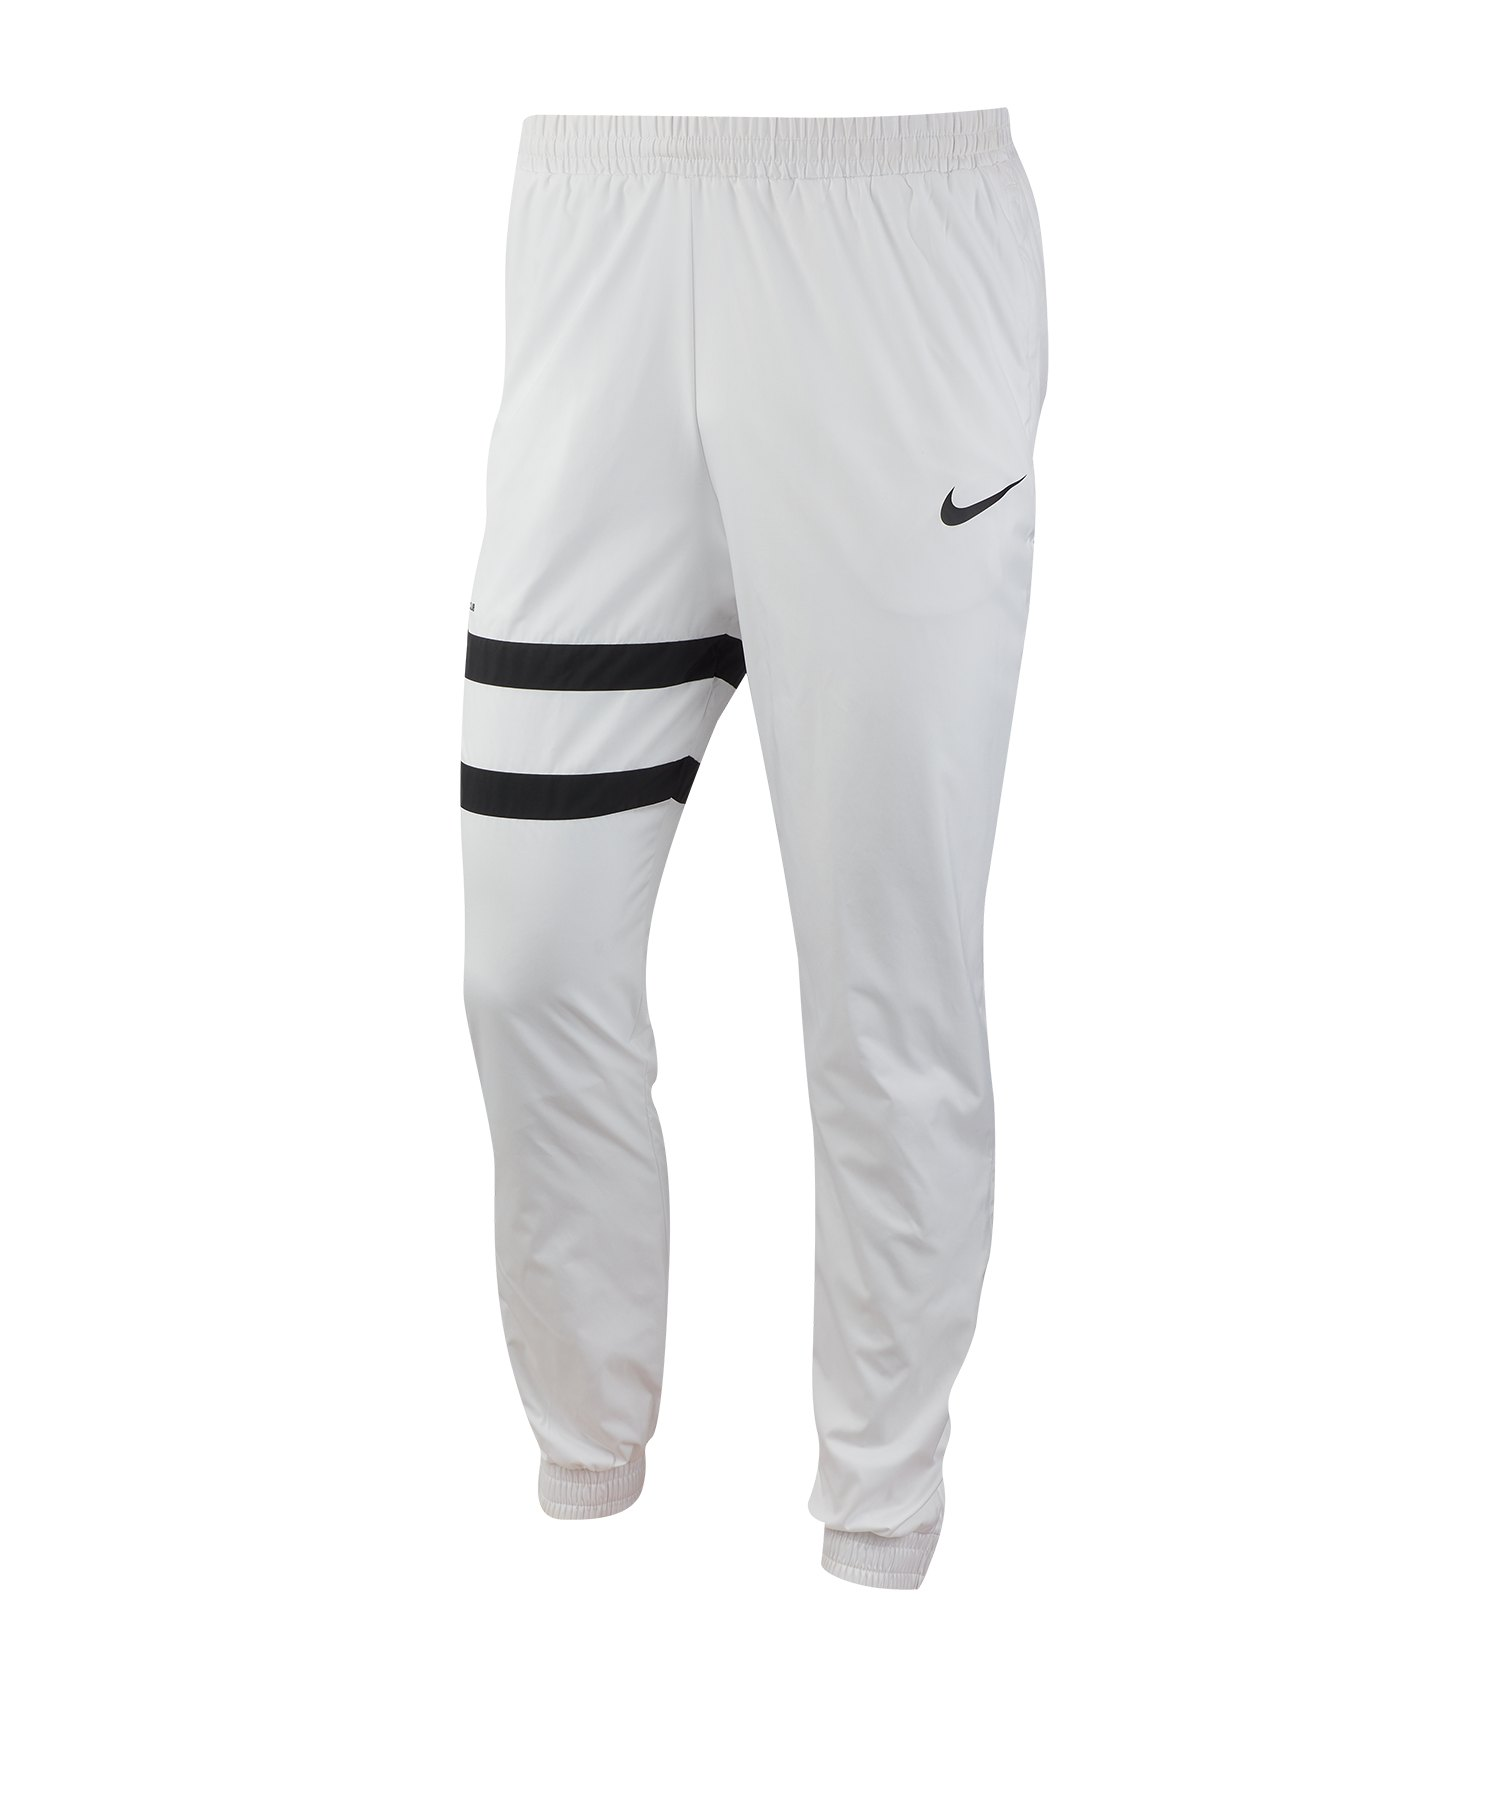 Nike F.C. Track Pant Hose Weiss F100 - weiss